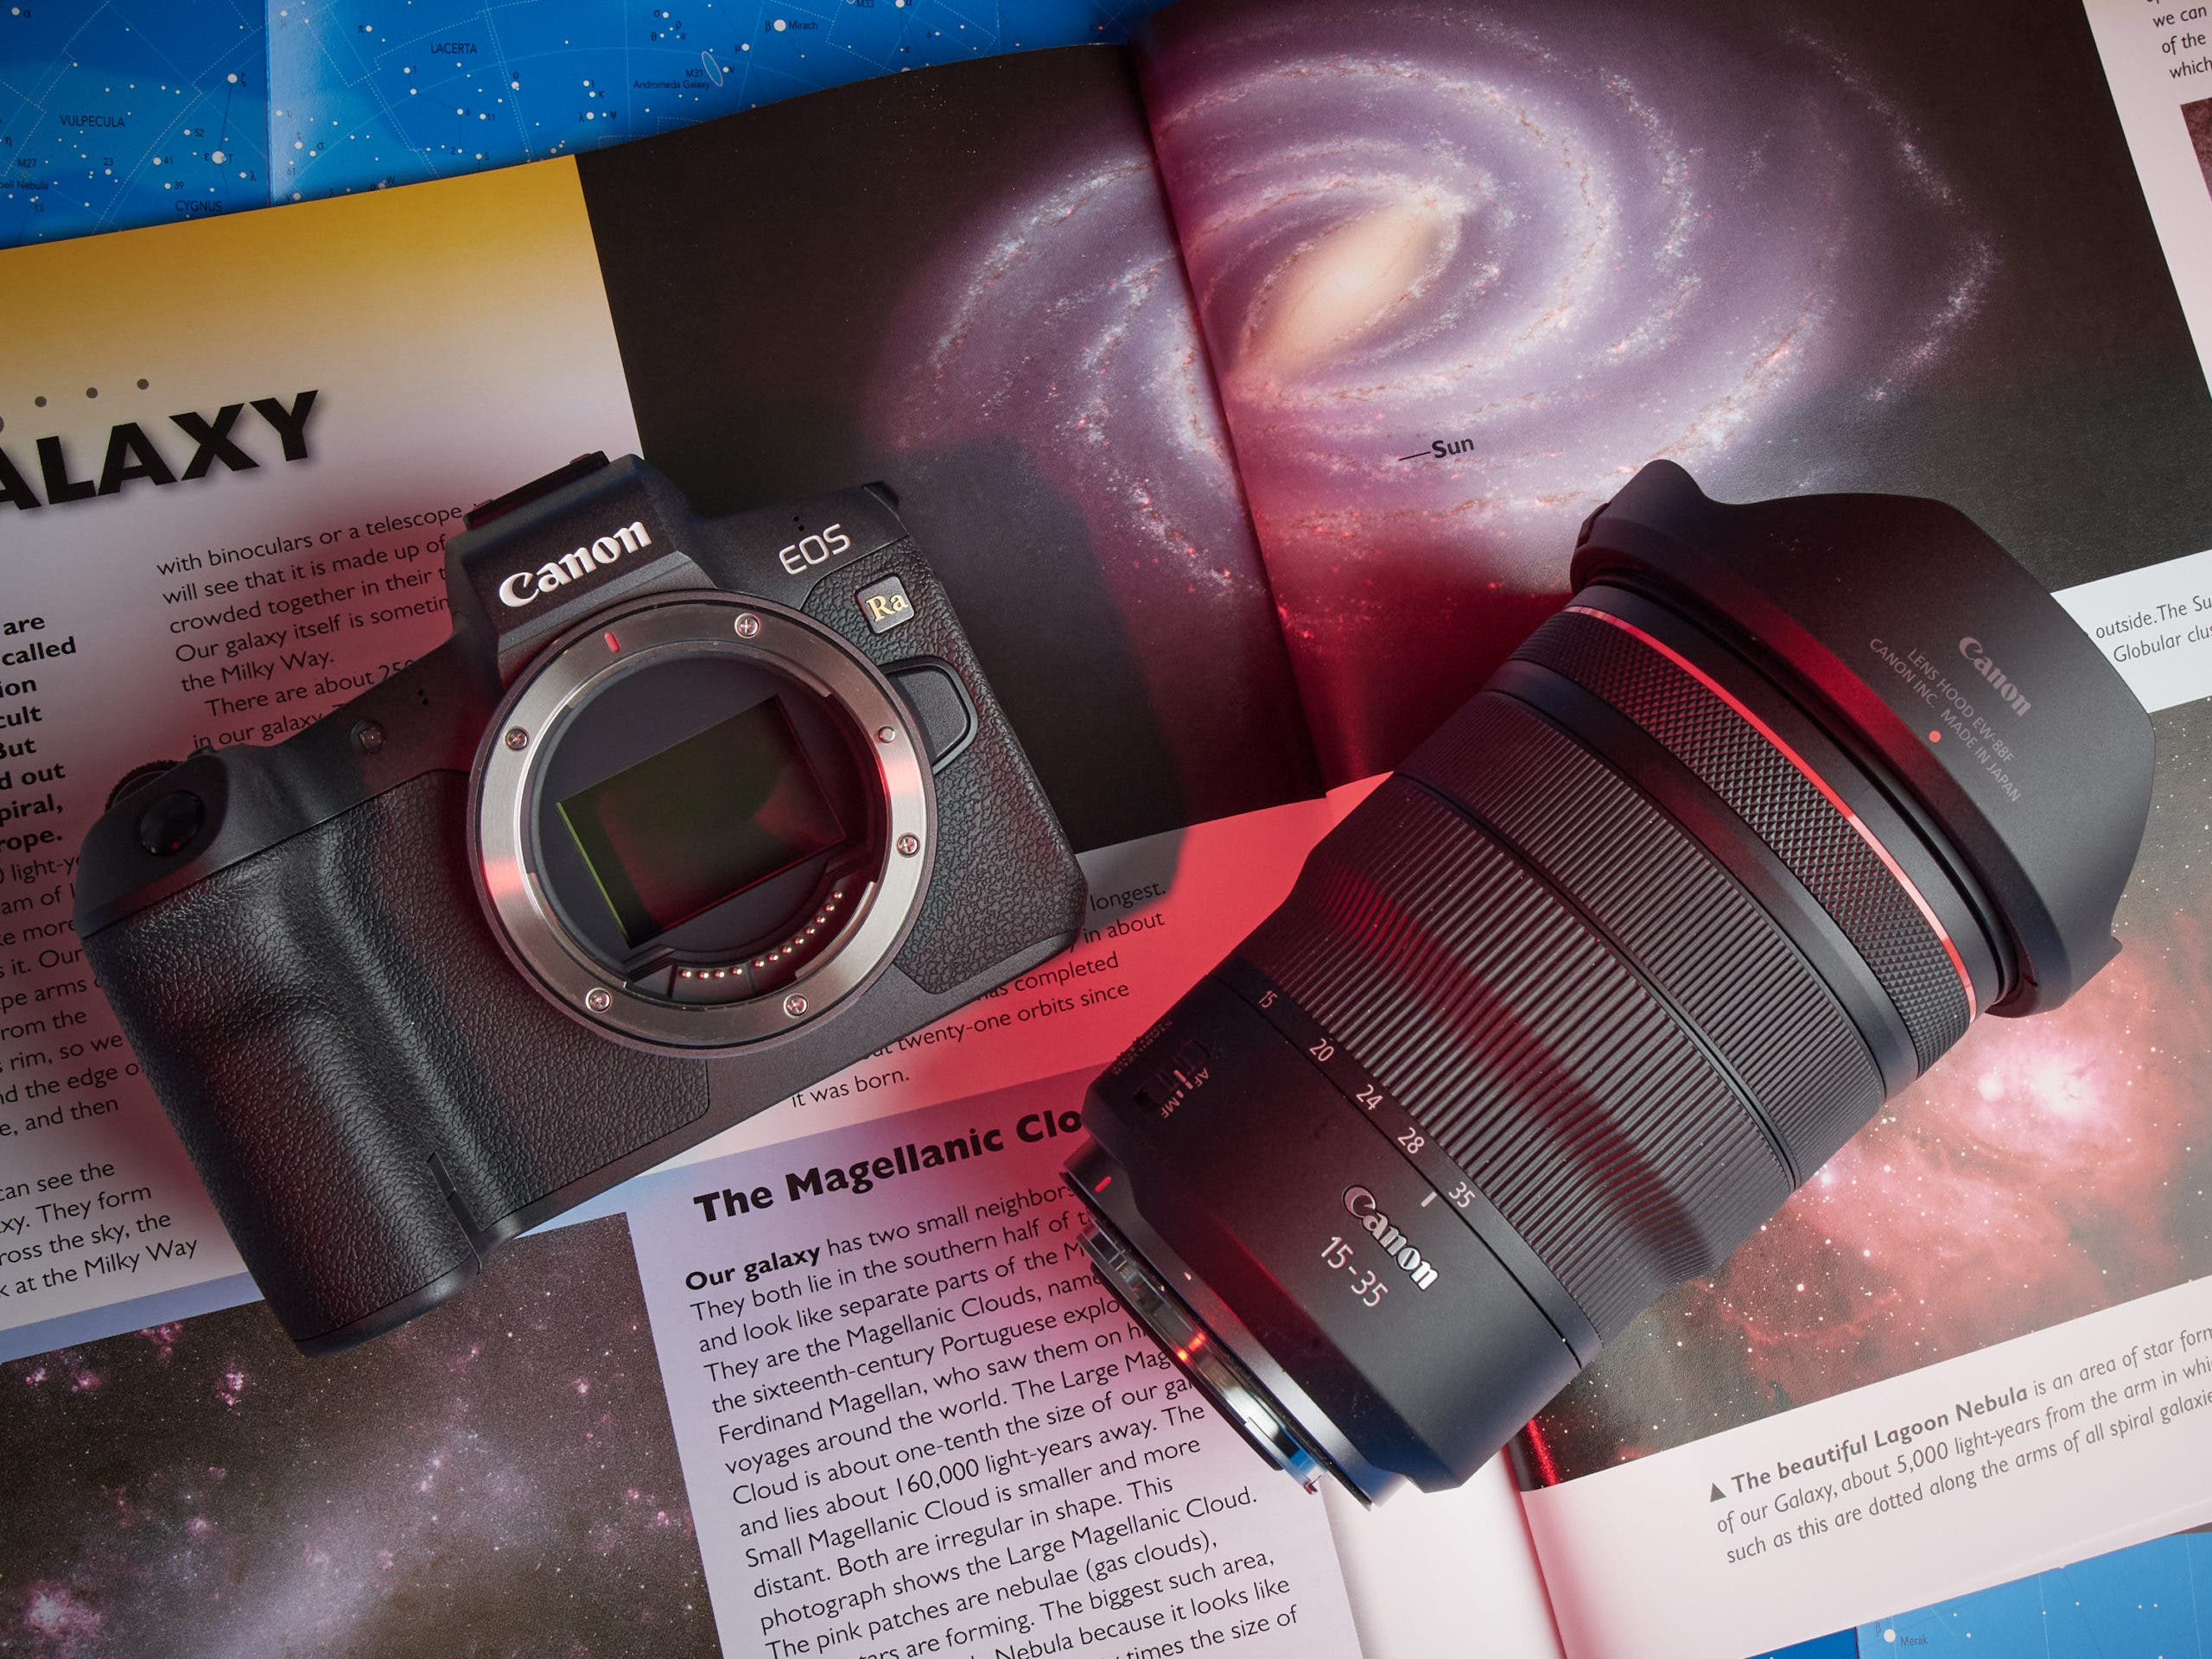 Shoot for the Stars: These 9 Cameras Help Make Astrophotography Easy